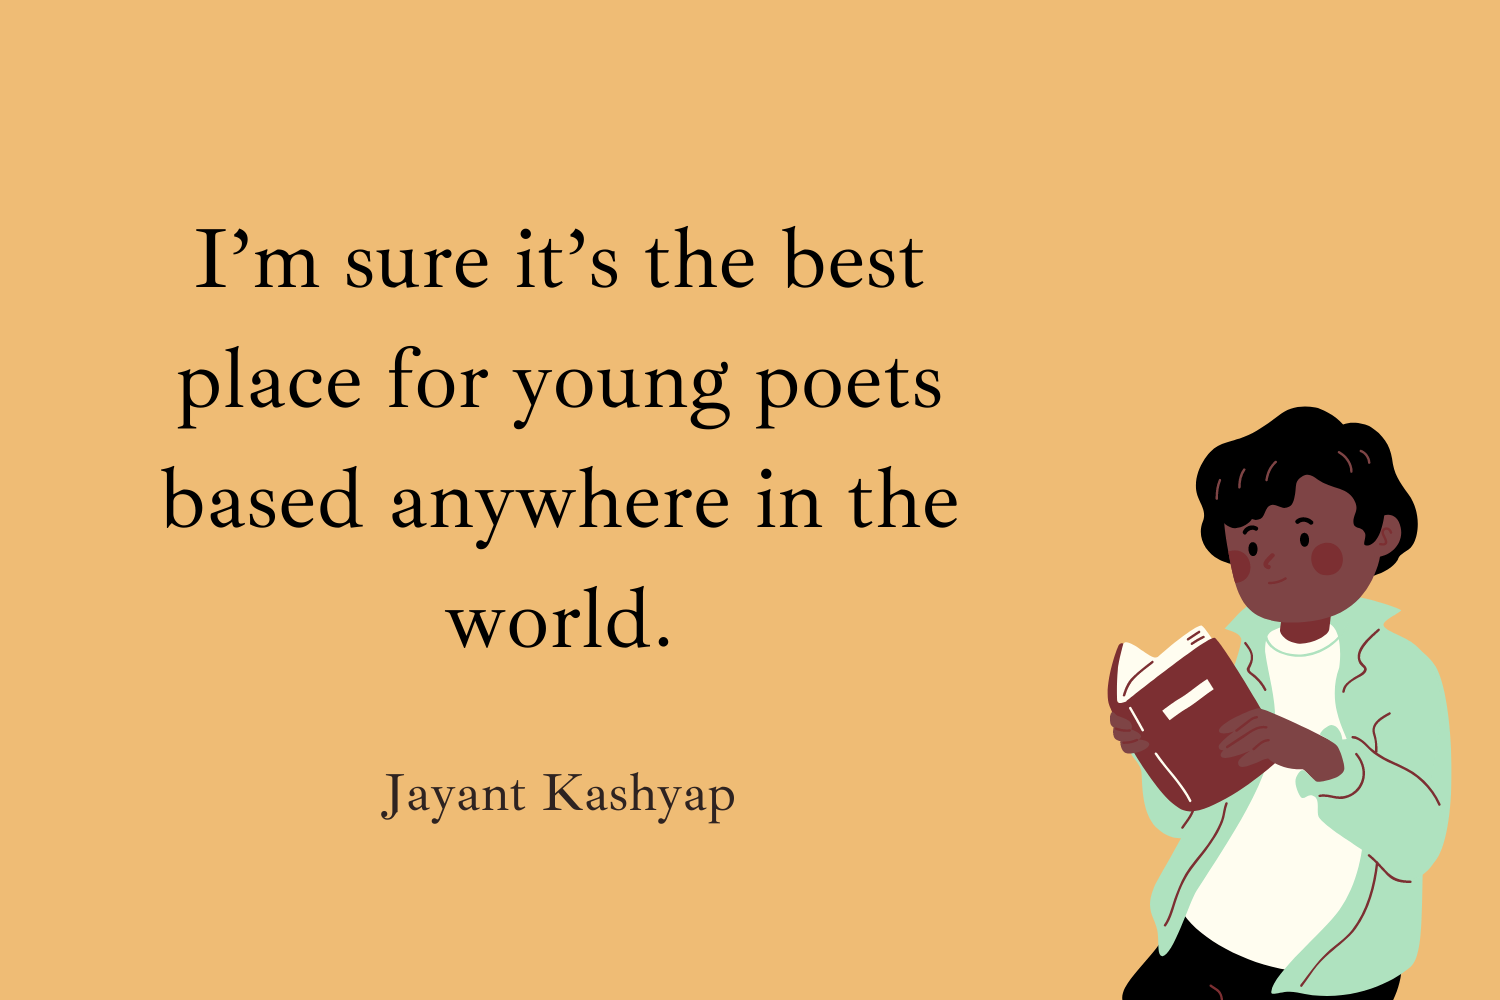 I'm sure it's the best place for young poets based anywhere in the world. Jayant Kashyap